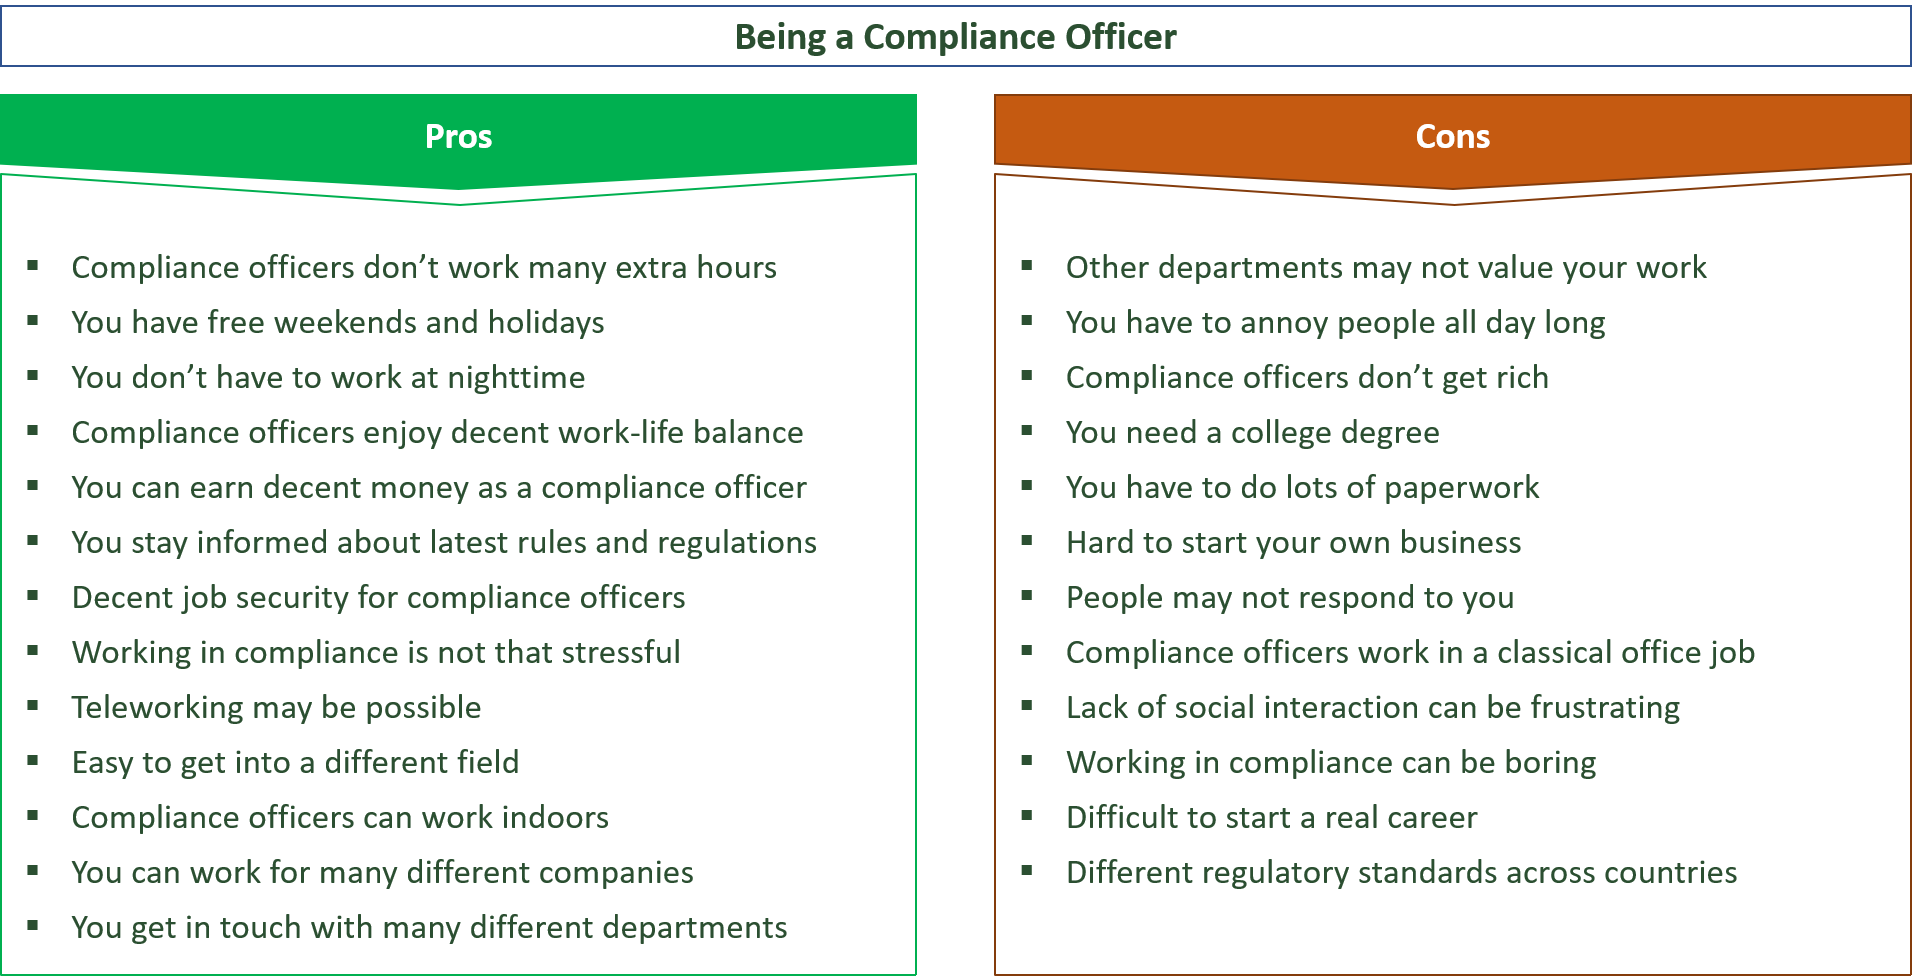 advantages and disadvantages of being a compliance officer